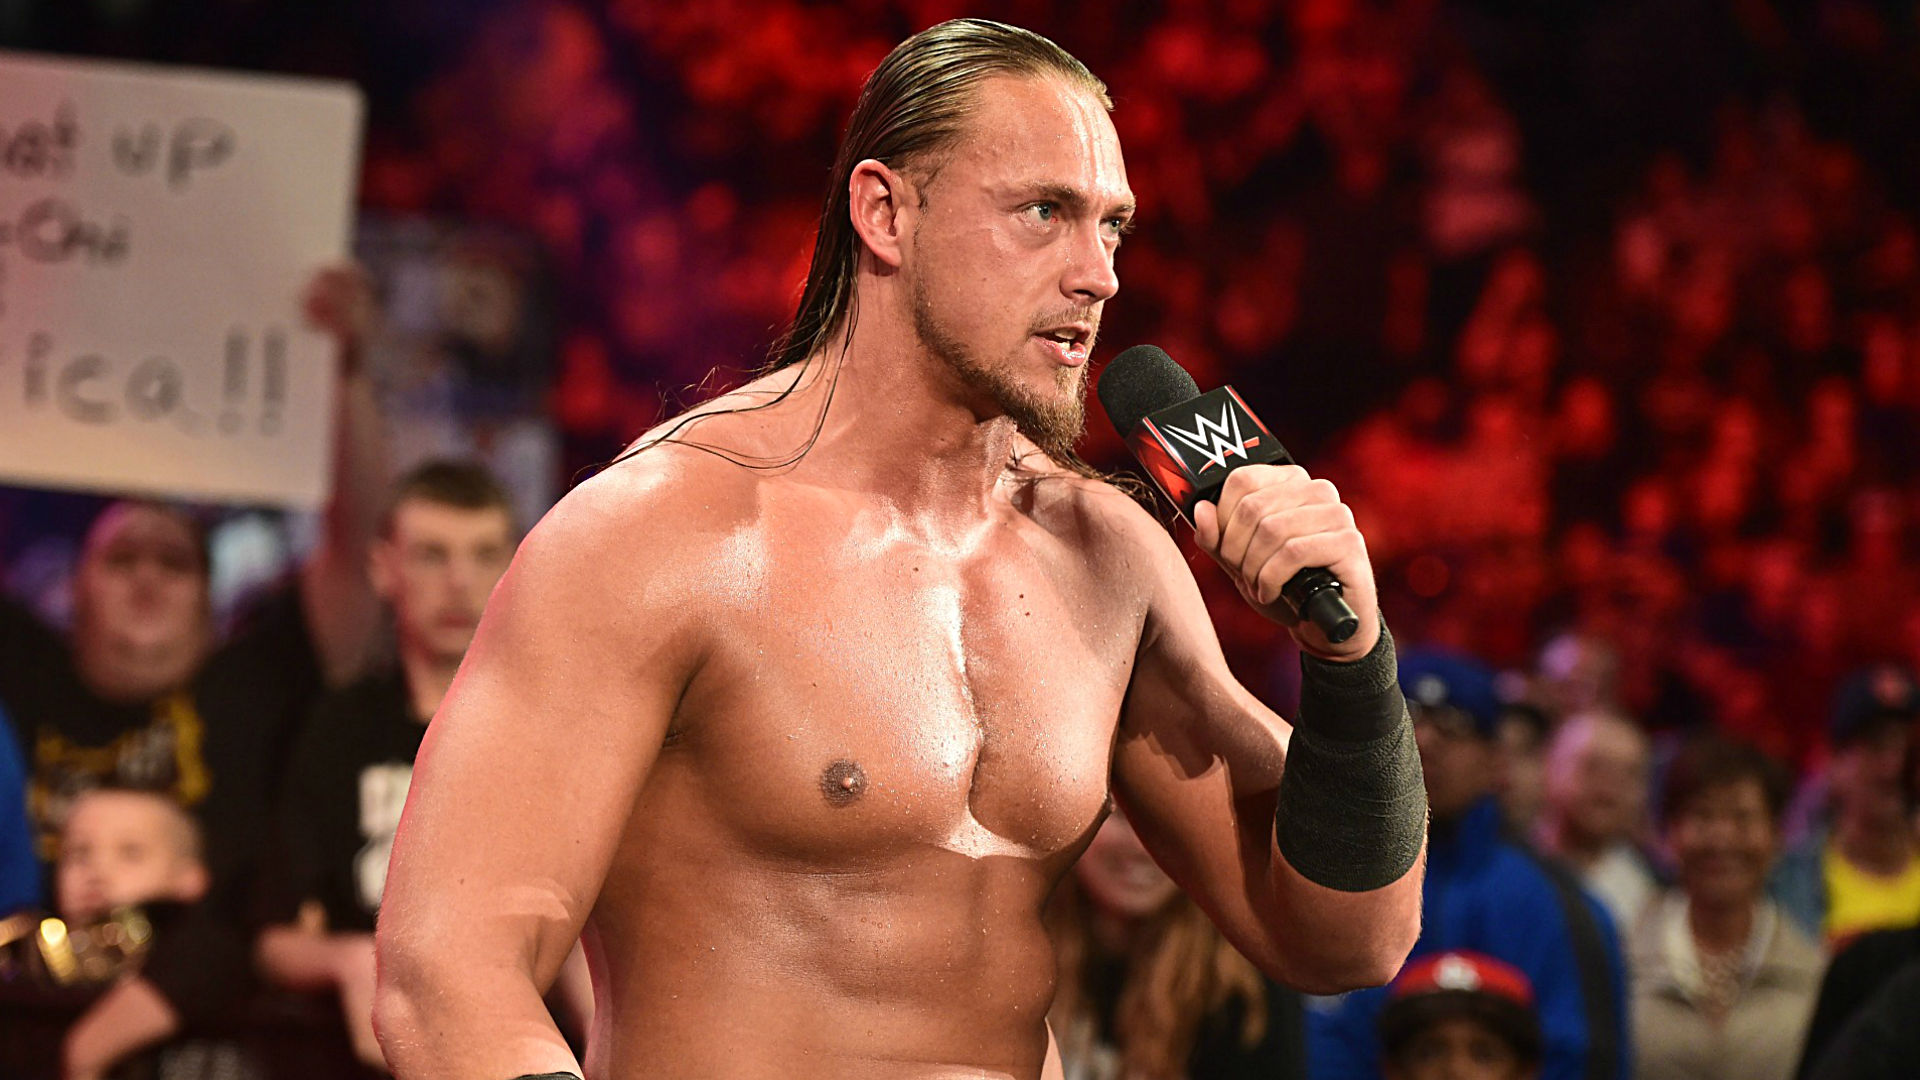 WWE Releases Big Cass Days After Money in the Bank 2018